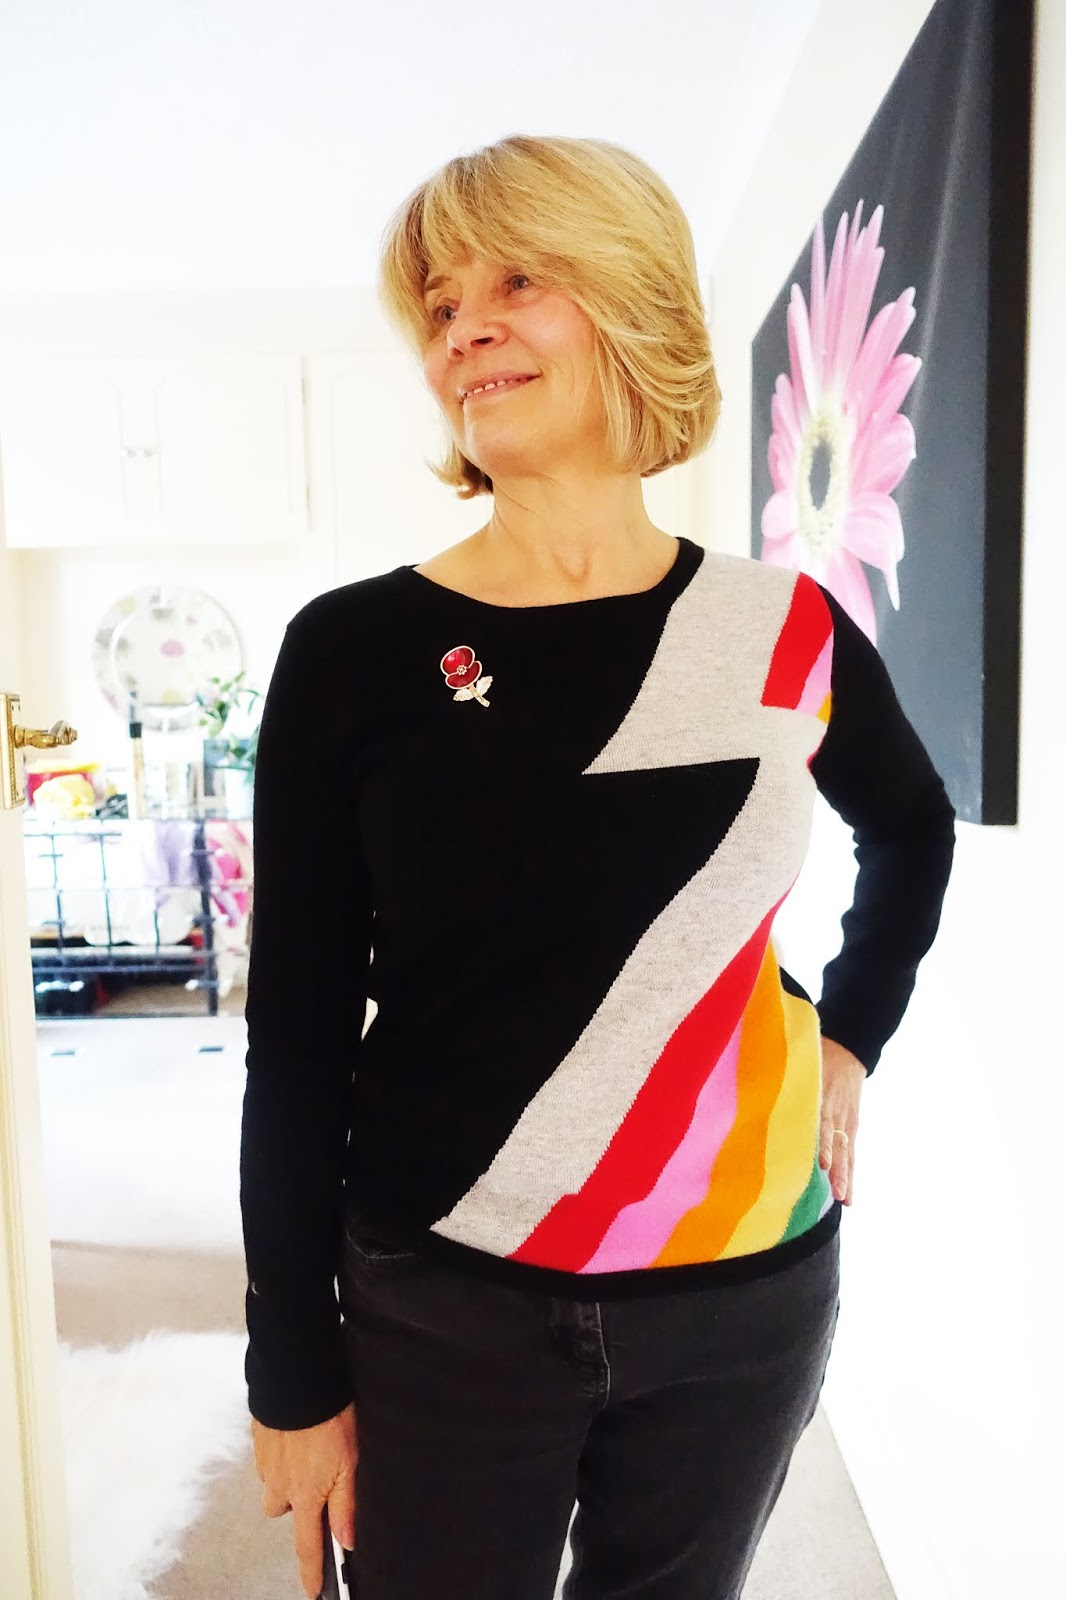 Black Bowie flash sweater from Orwell + Austen worn with black jeans and silver boots by over-50s style blogger Gail Hanlon